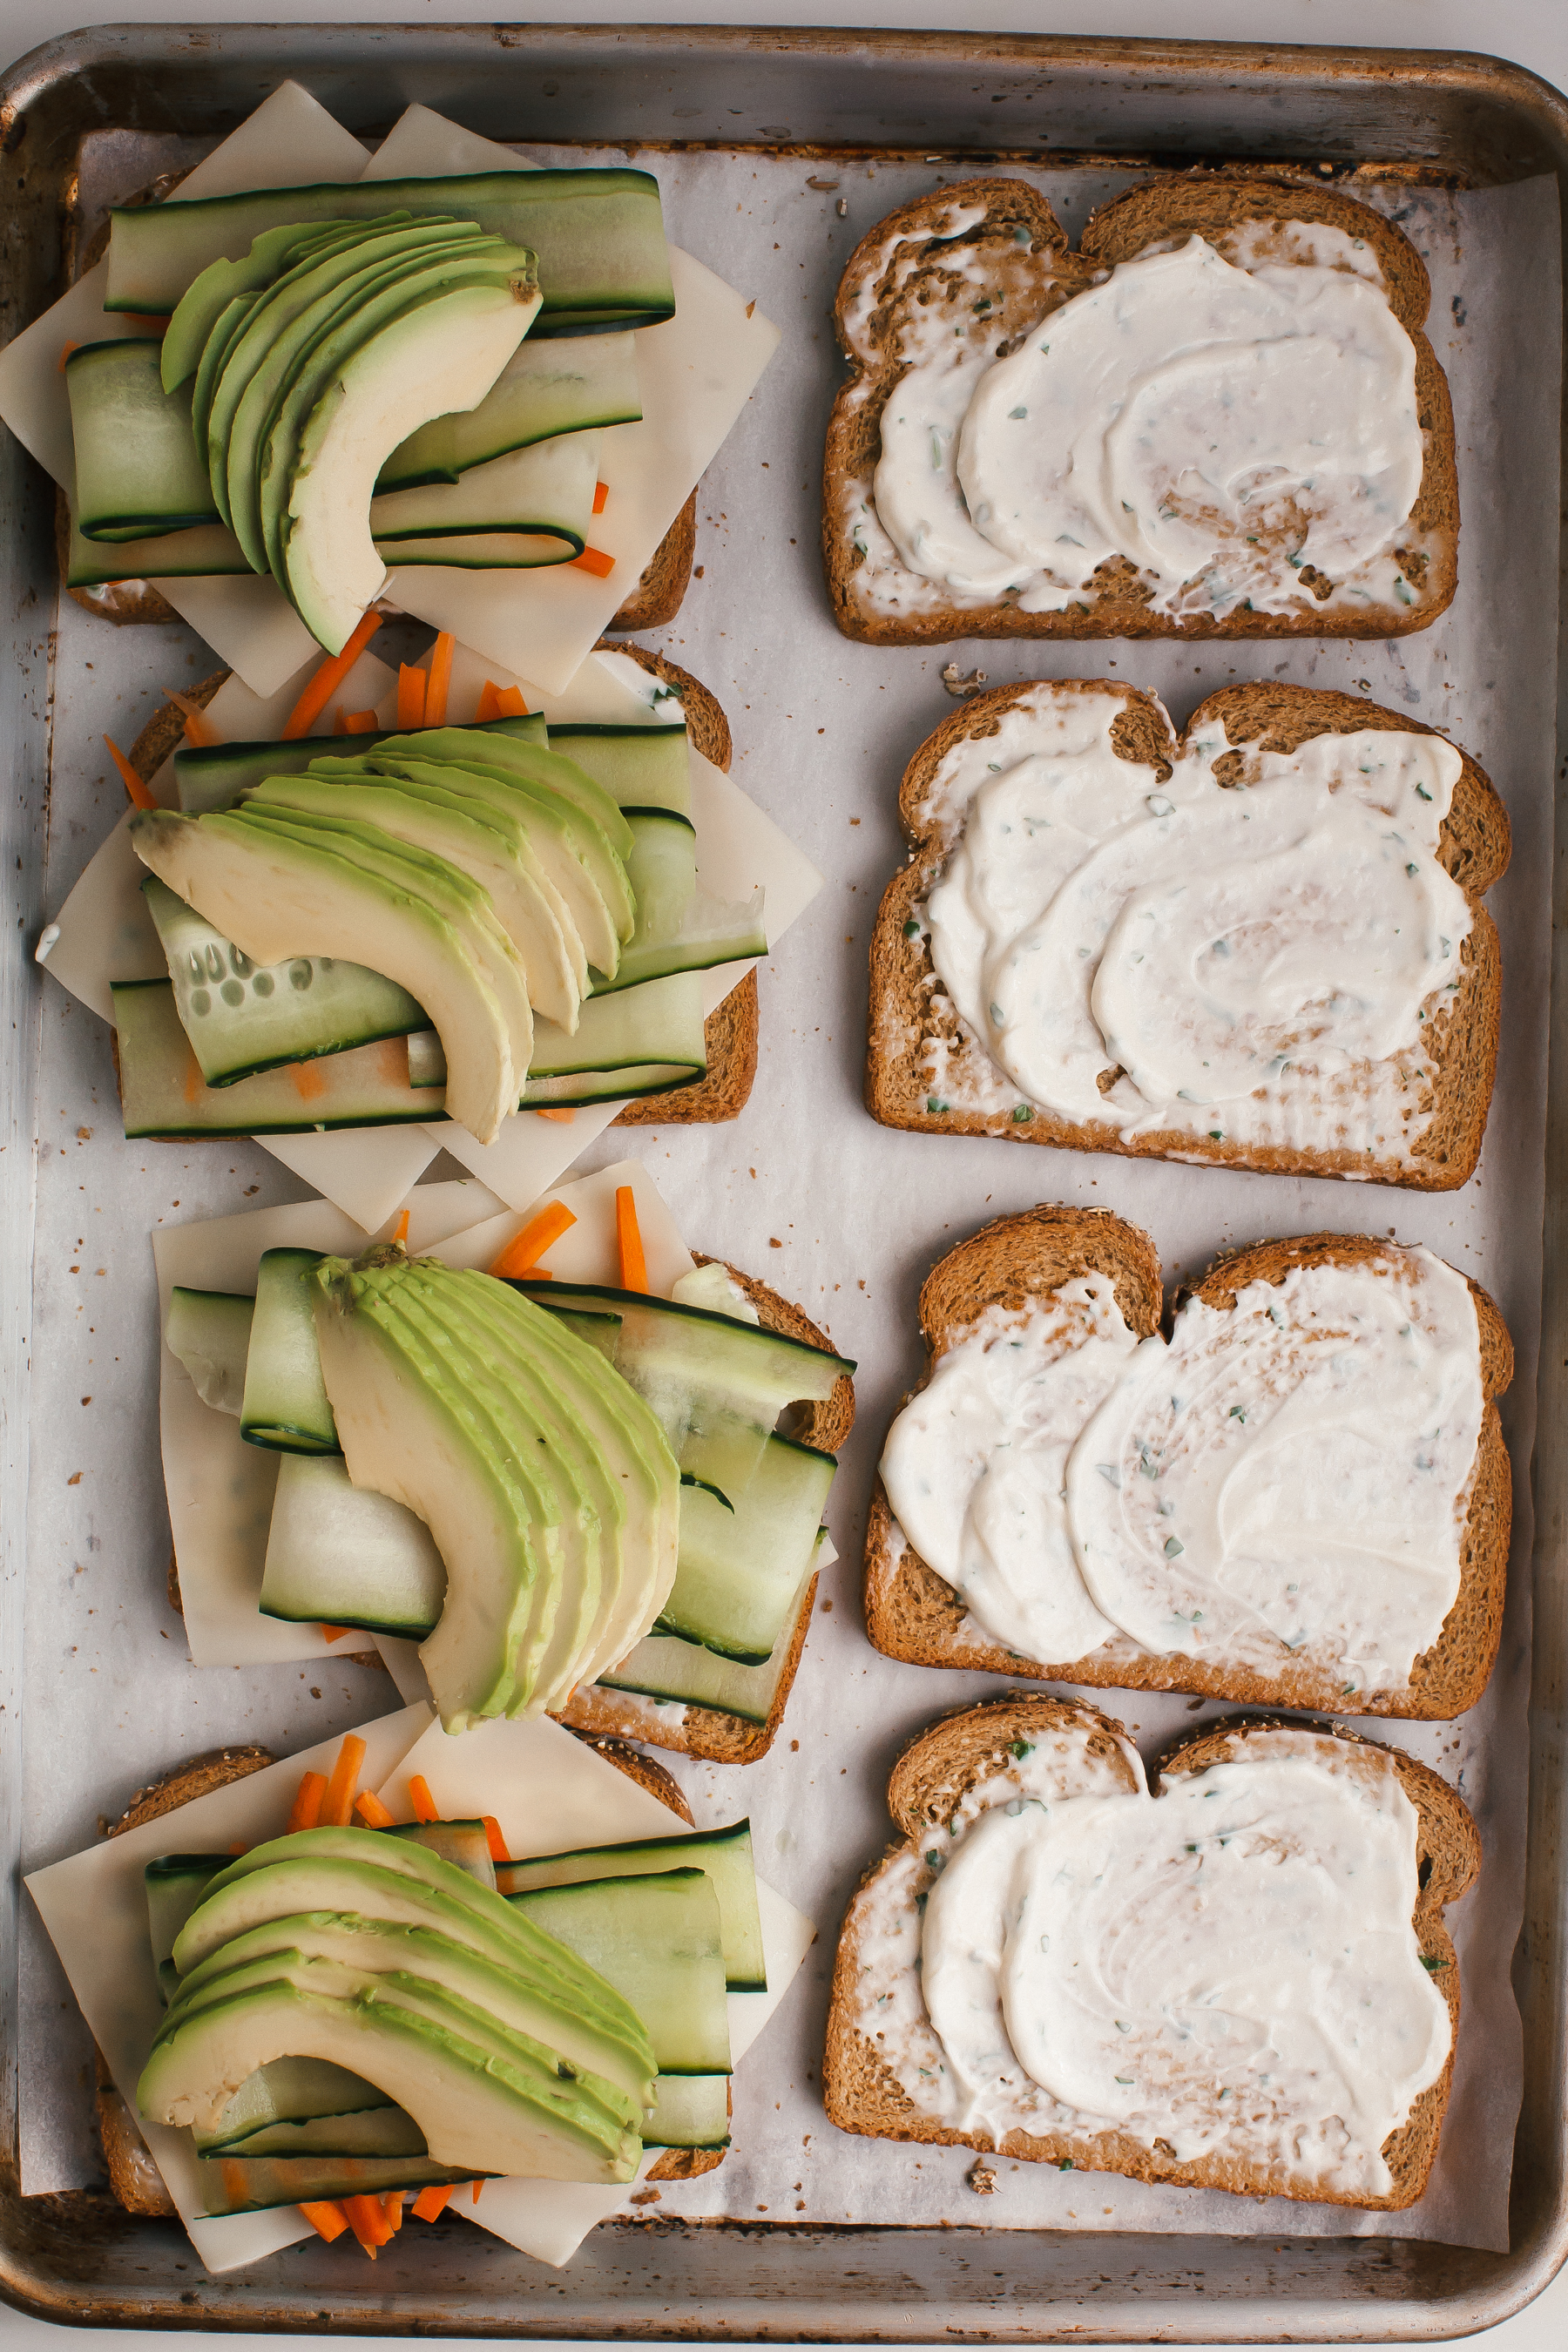 10 lunches to make for work without actually cooking ANYTHING